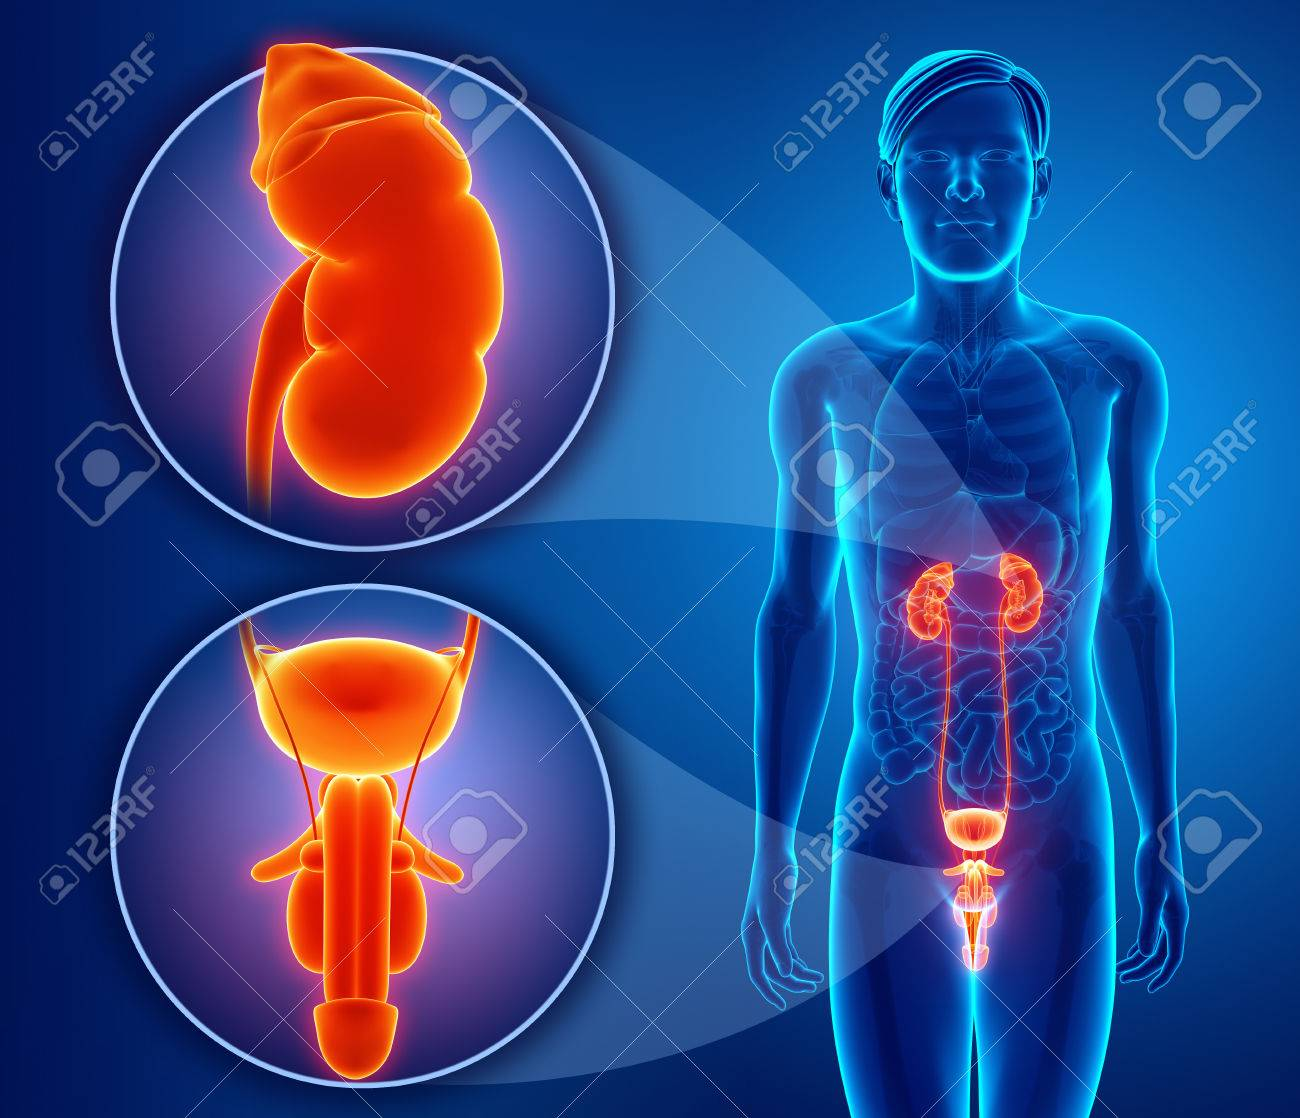 Male Reproductive System Stock Photo Picture And Royalty Free Image